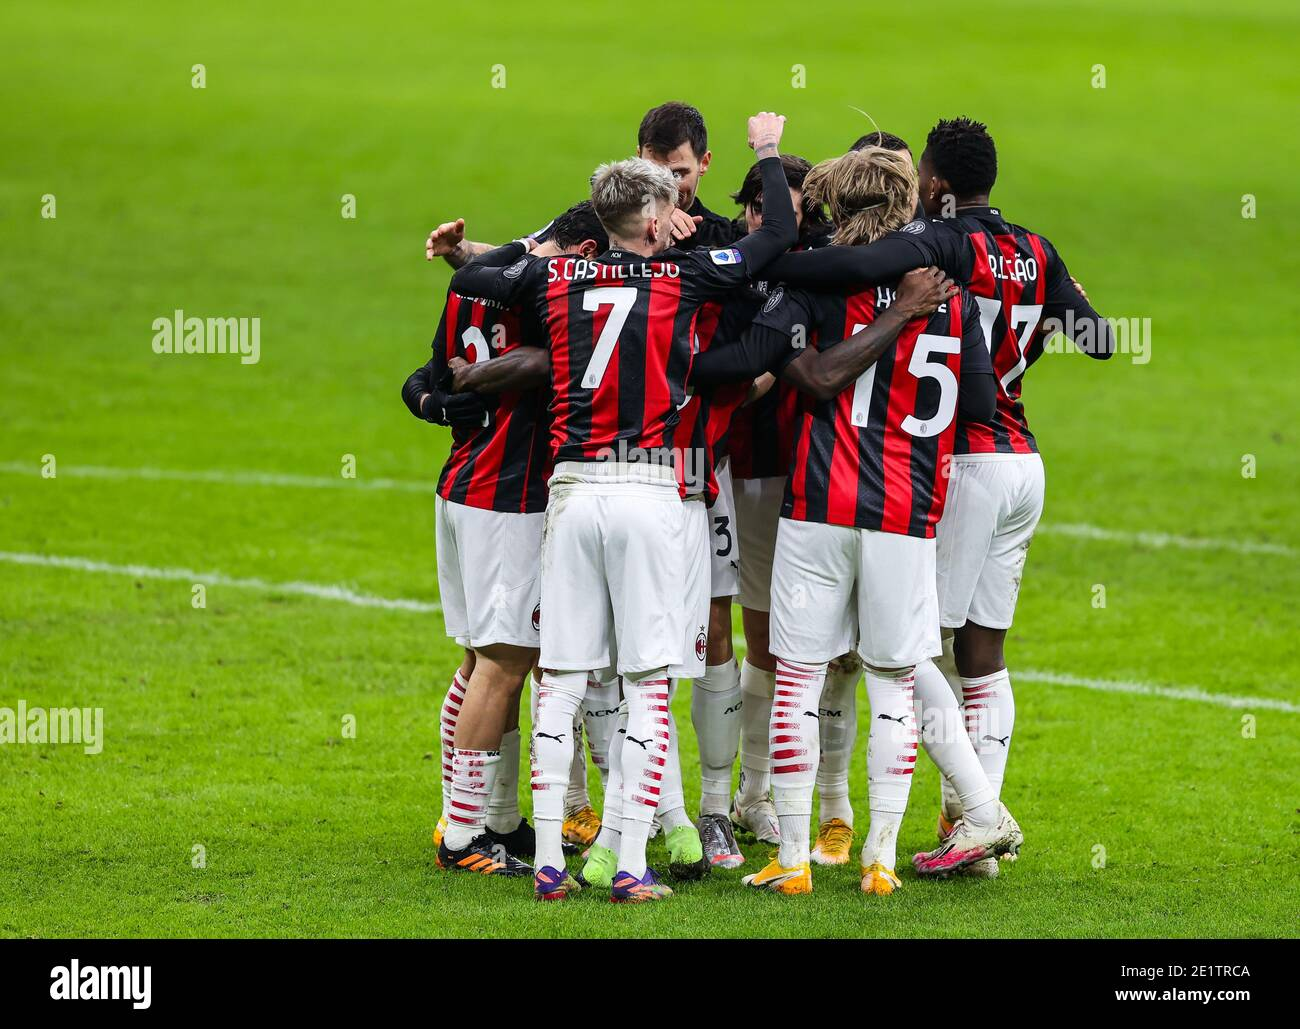 Giuseppe Meazza San Siro stadium, Milan, Italy. 09th Jan, 2021. Franck Kessie of AC Milan celebrates with his teammates during AC Milan vs Torino FC, Italian football Serie A match - Photo Fabrizio Carabelli/LM Credit: LiveMedia/Alamy Live News Stock Photo